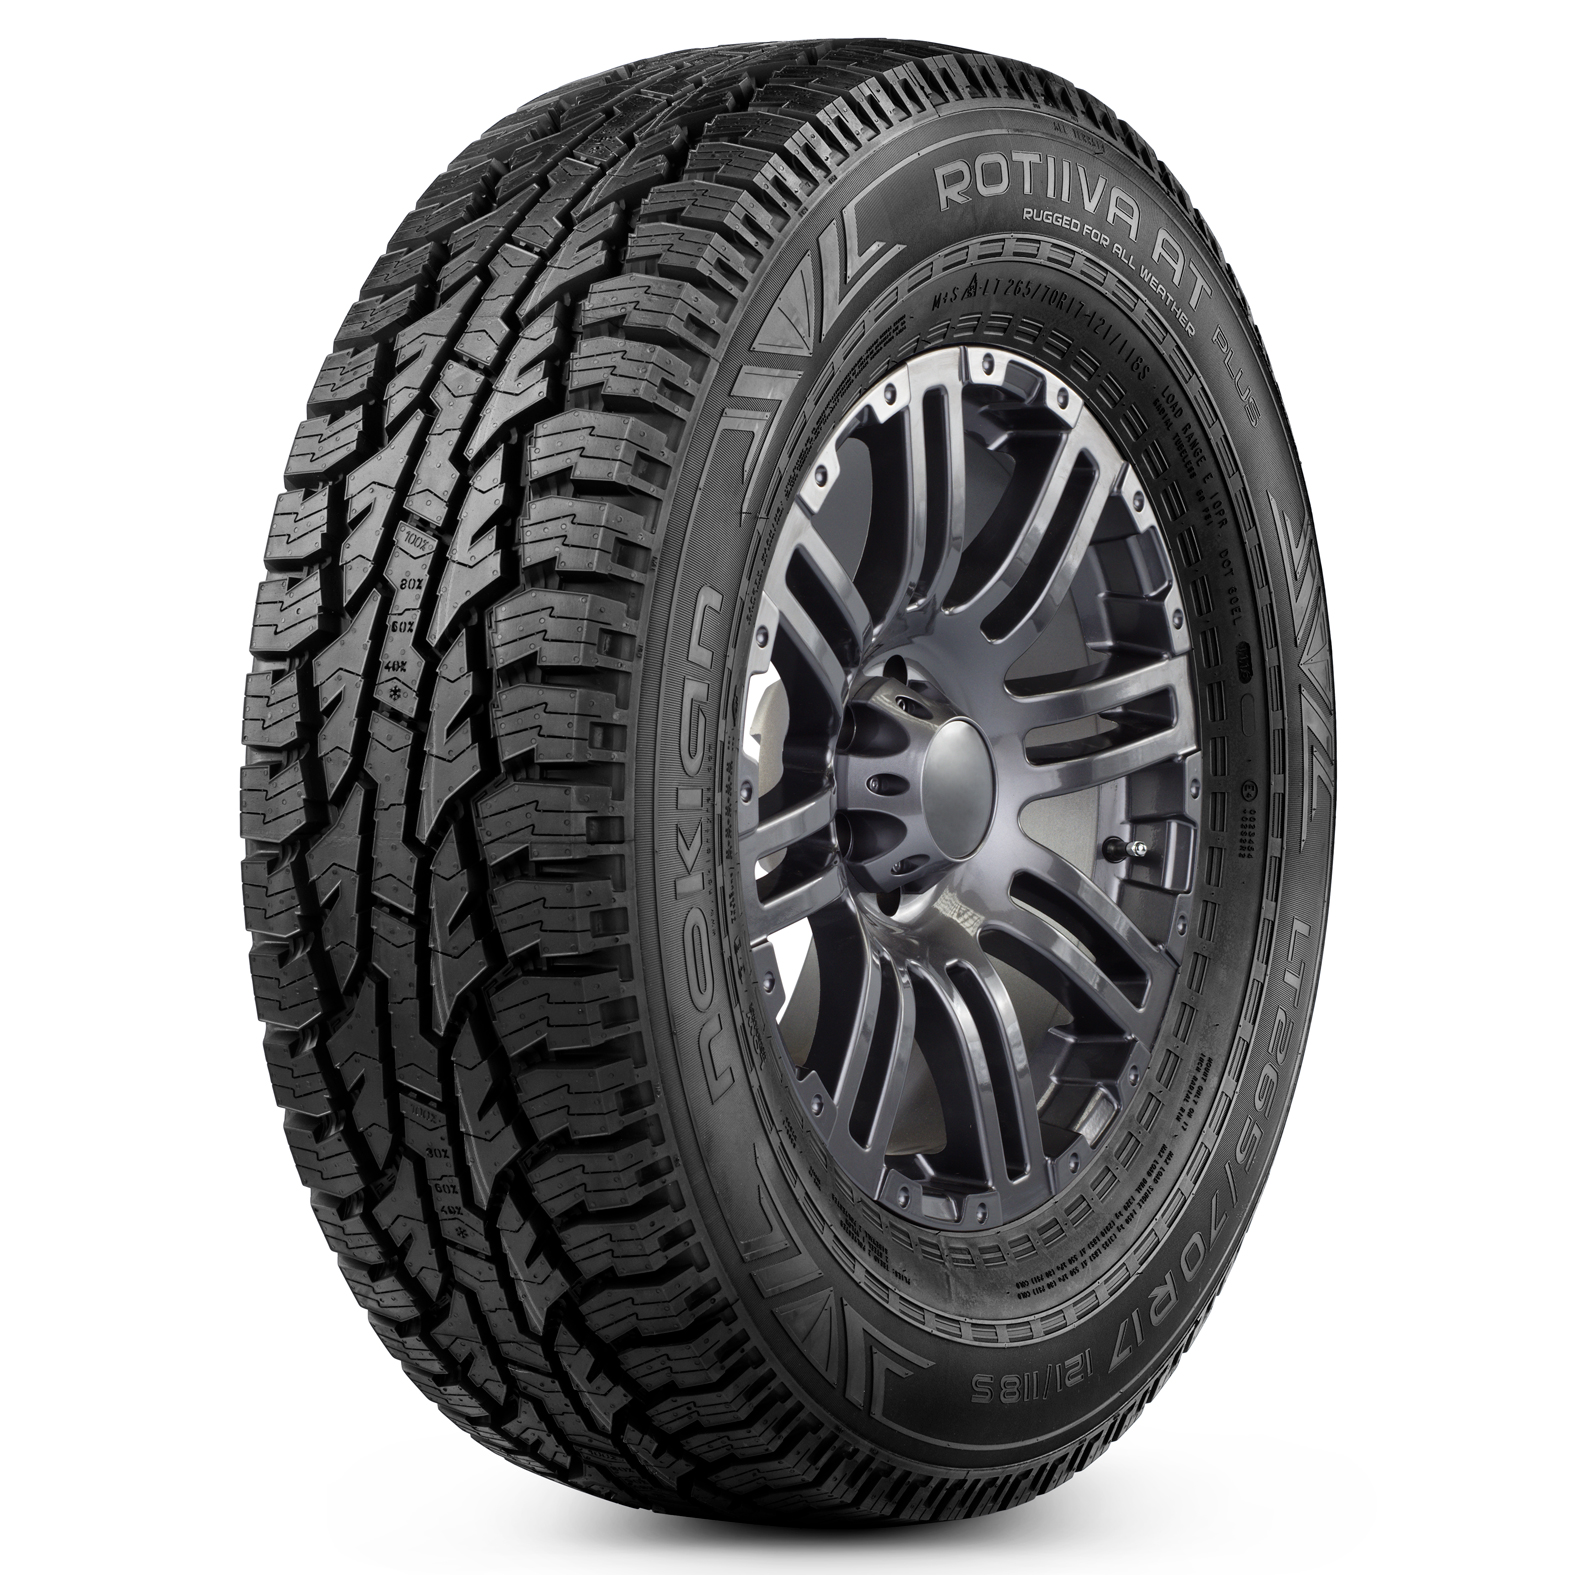 Nokian Tyres Rotiiva AT Plus tire - angle